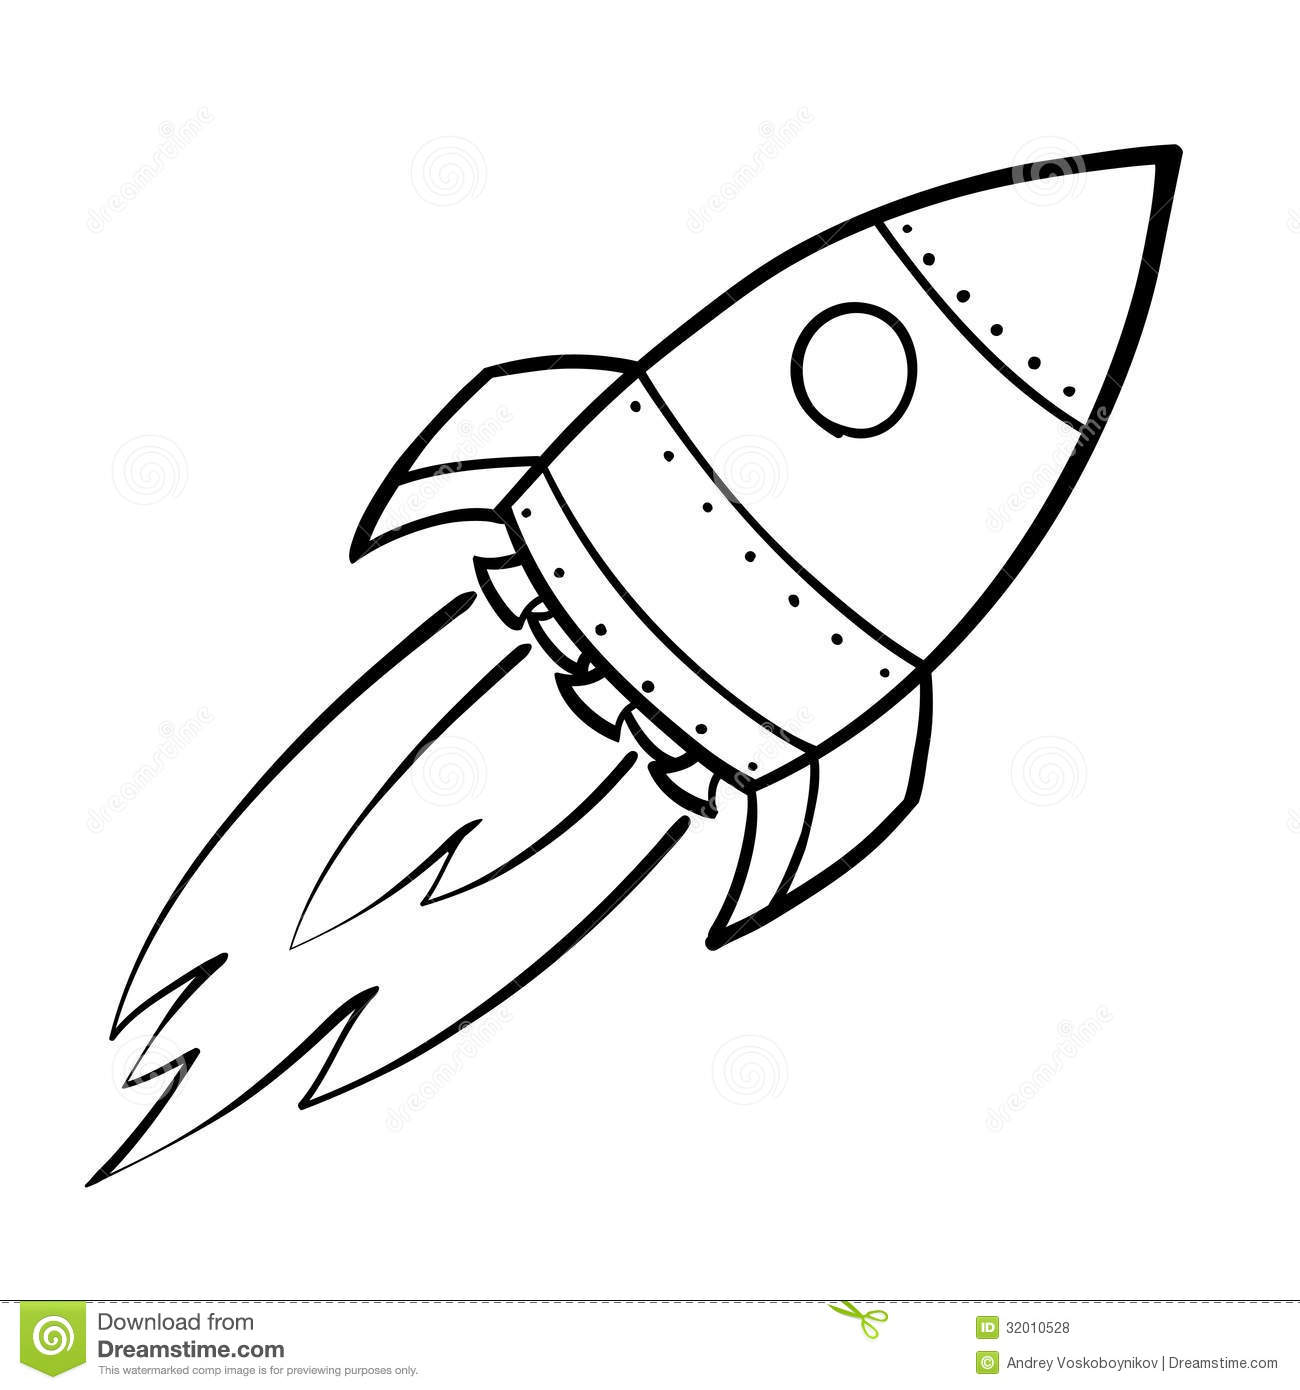 Nasa rocket coloring pages